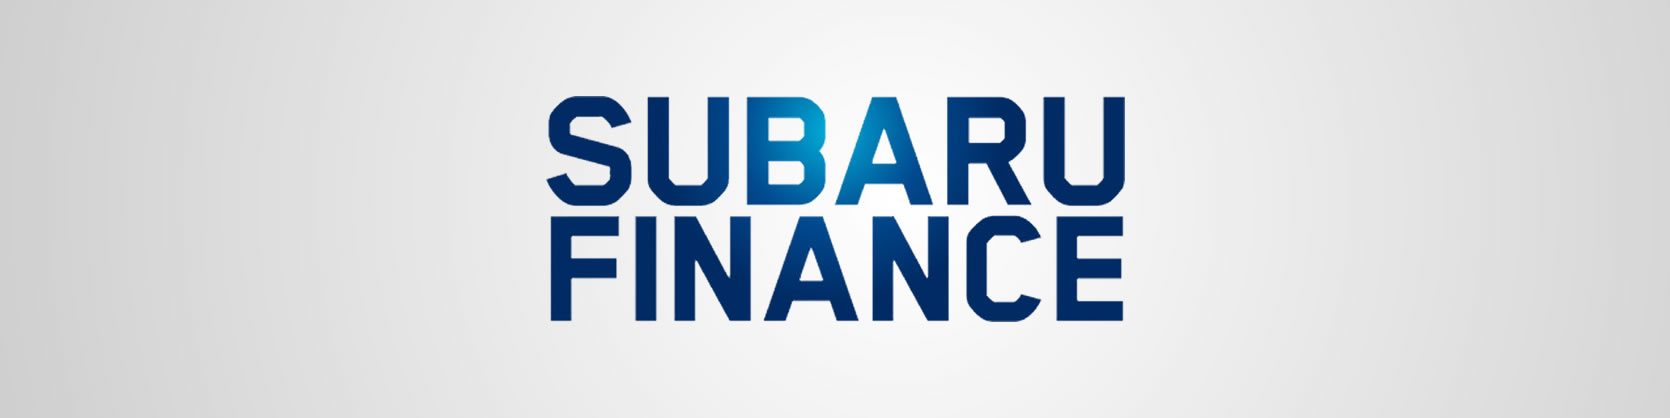 Related Keywords Suggestions For Subaru Finance